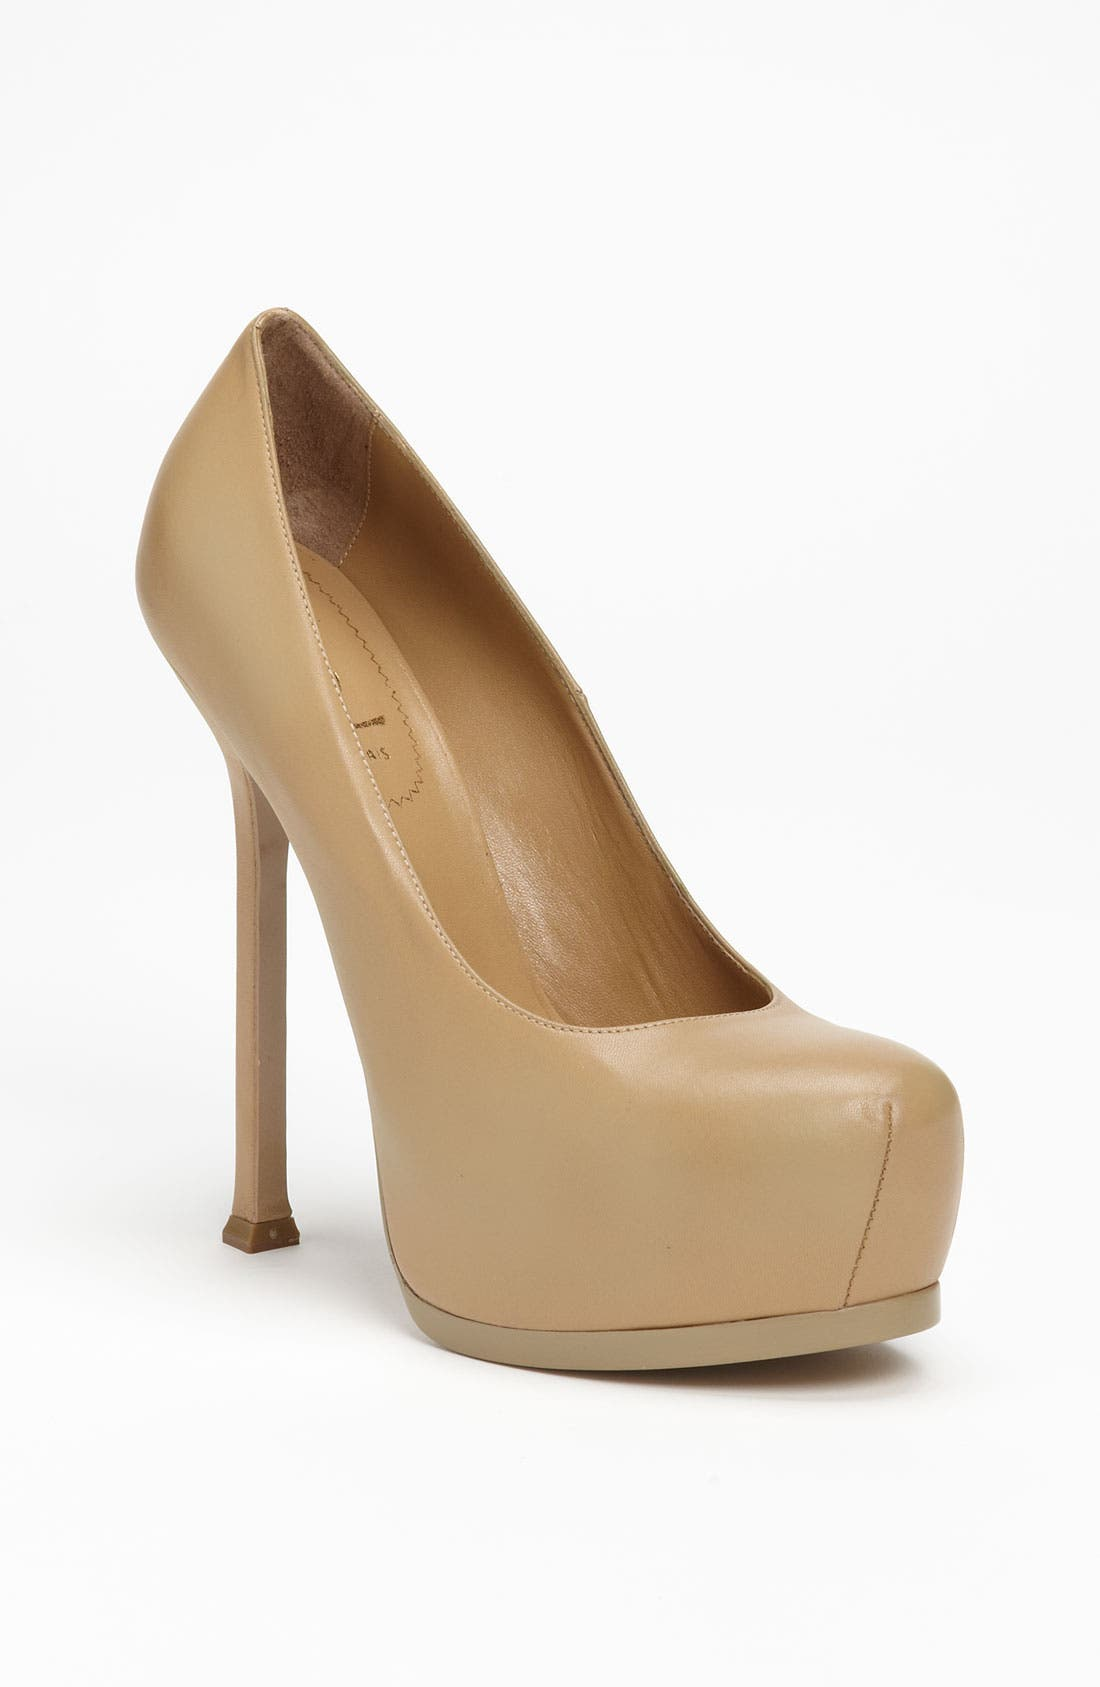 Main Image - Yves Saint Laurent 'Tribtoo' Platform Pump